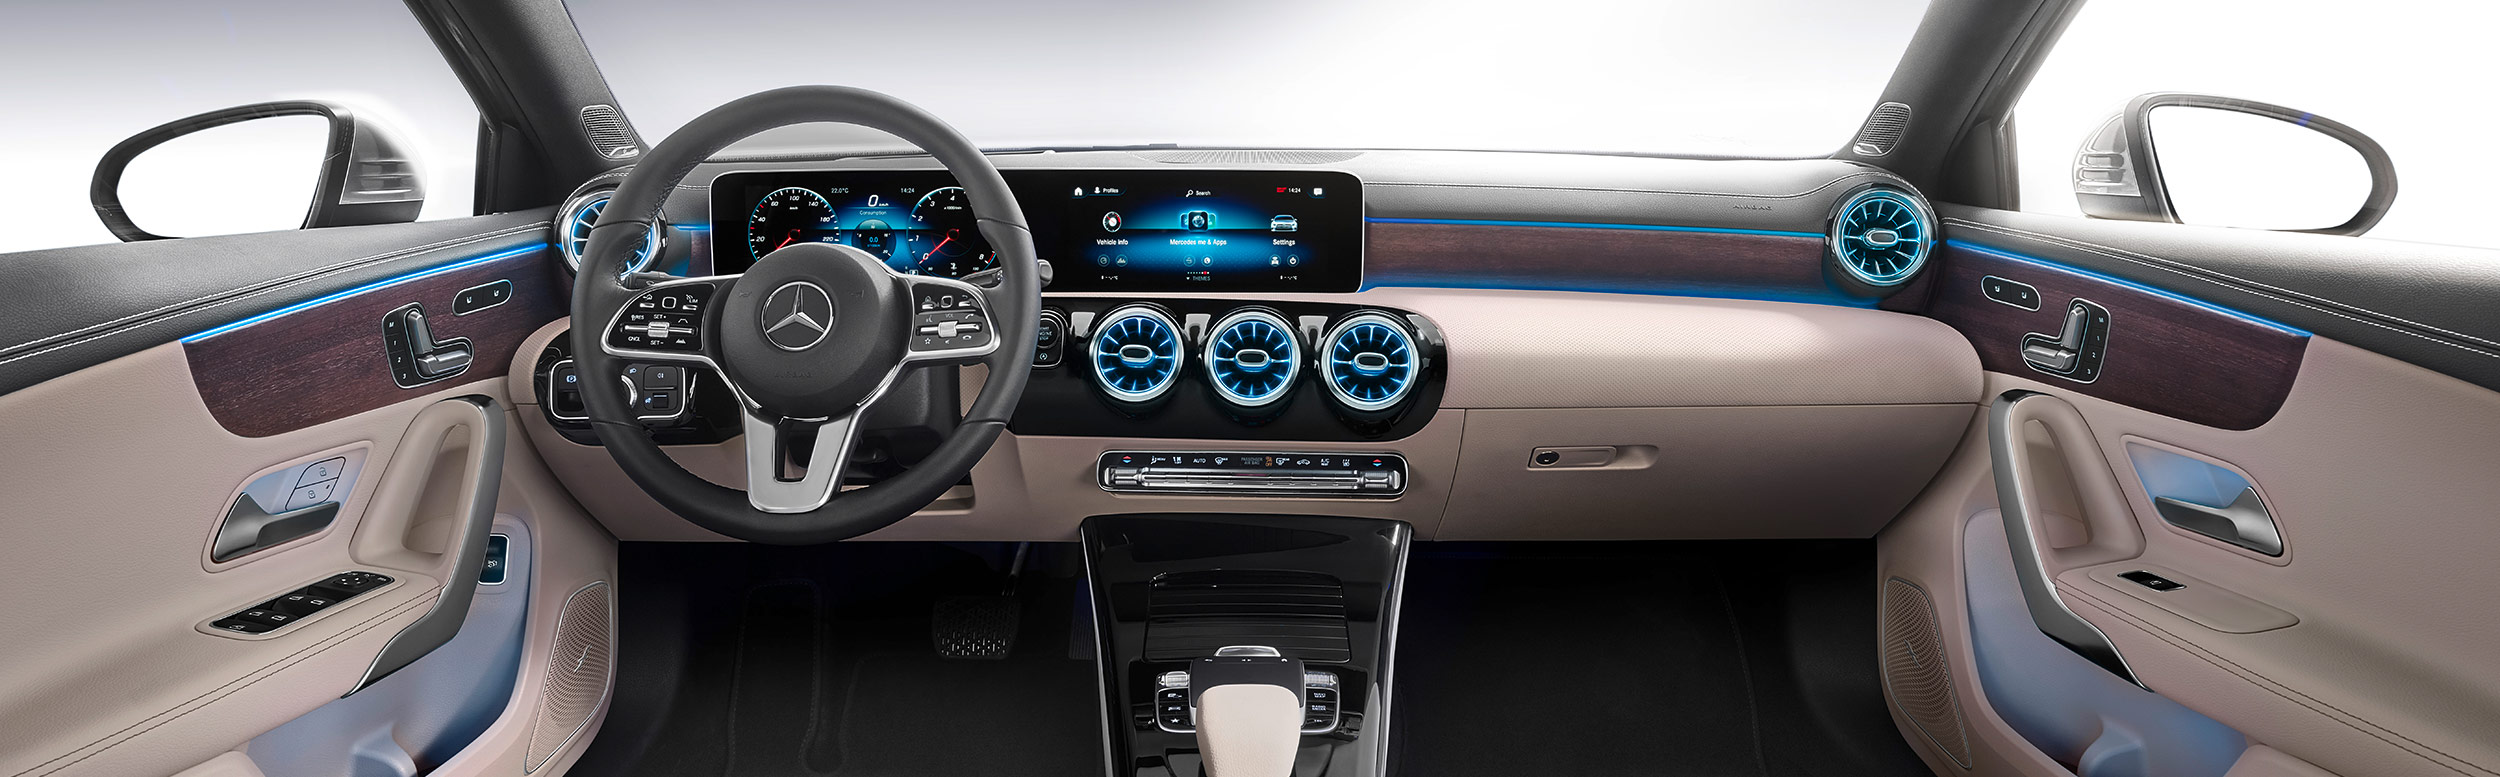 Mercedes-Benz A-Class Sedan Interior Shot